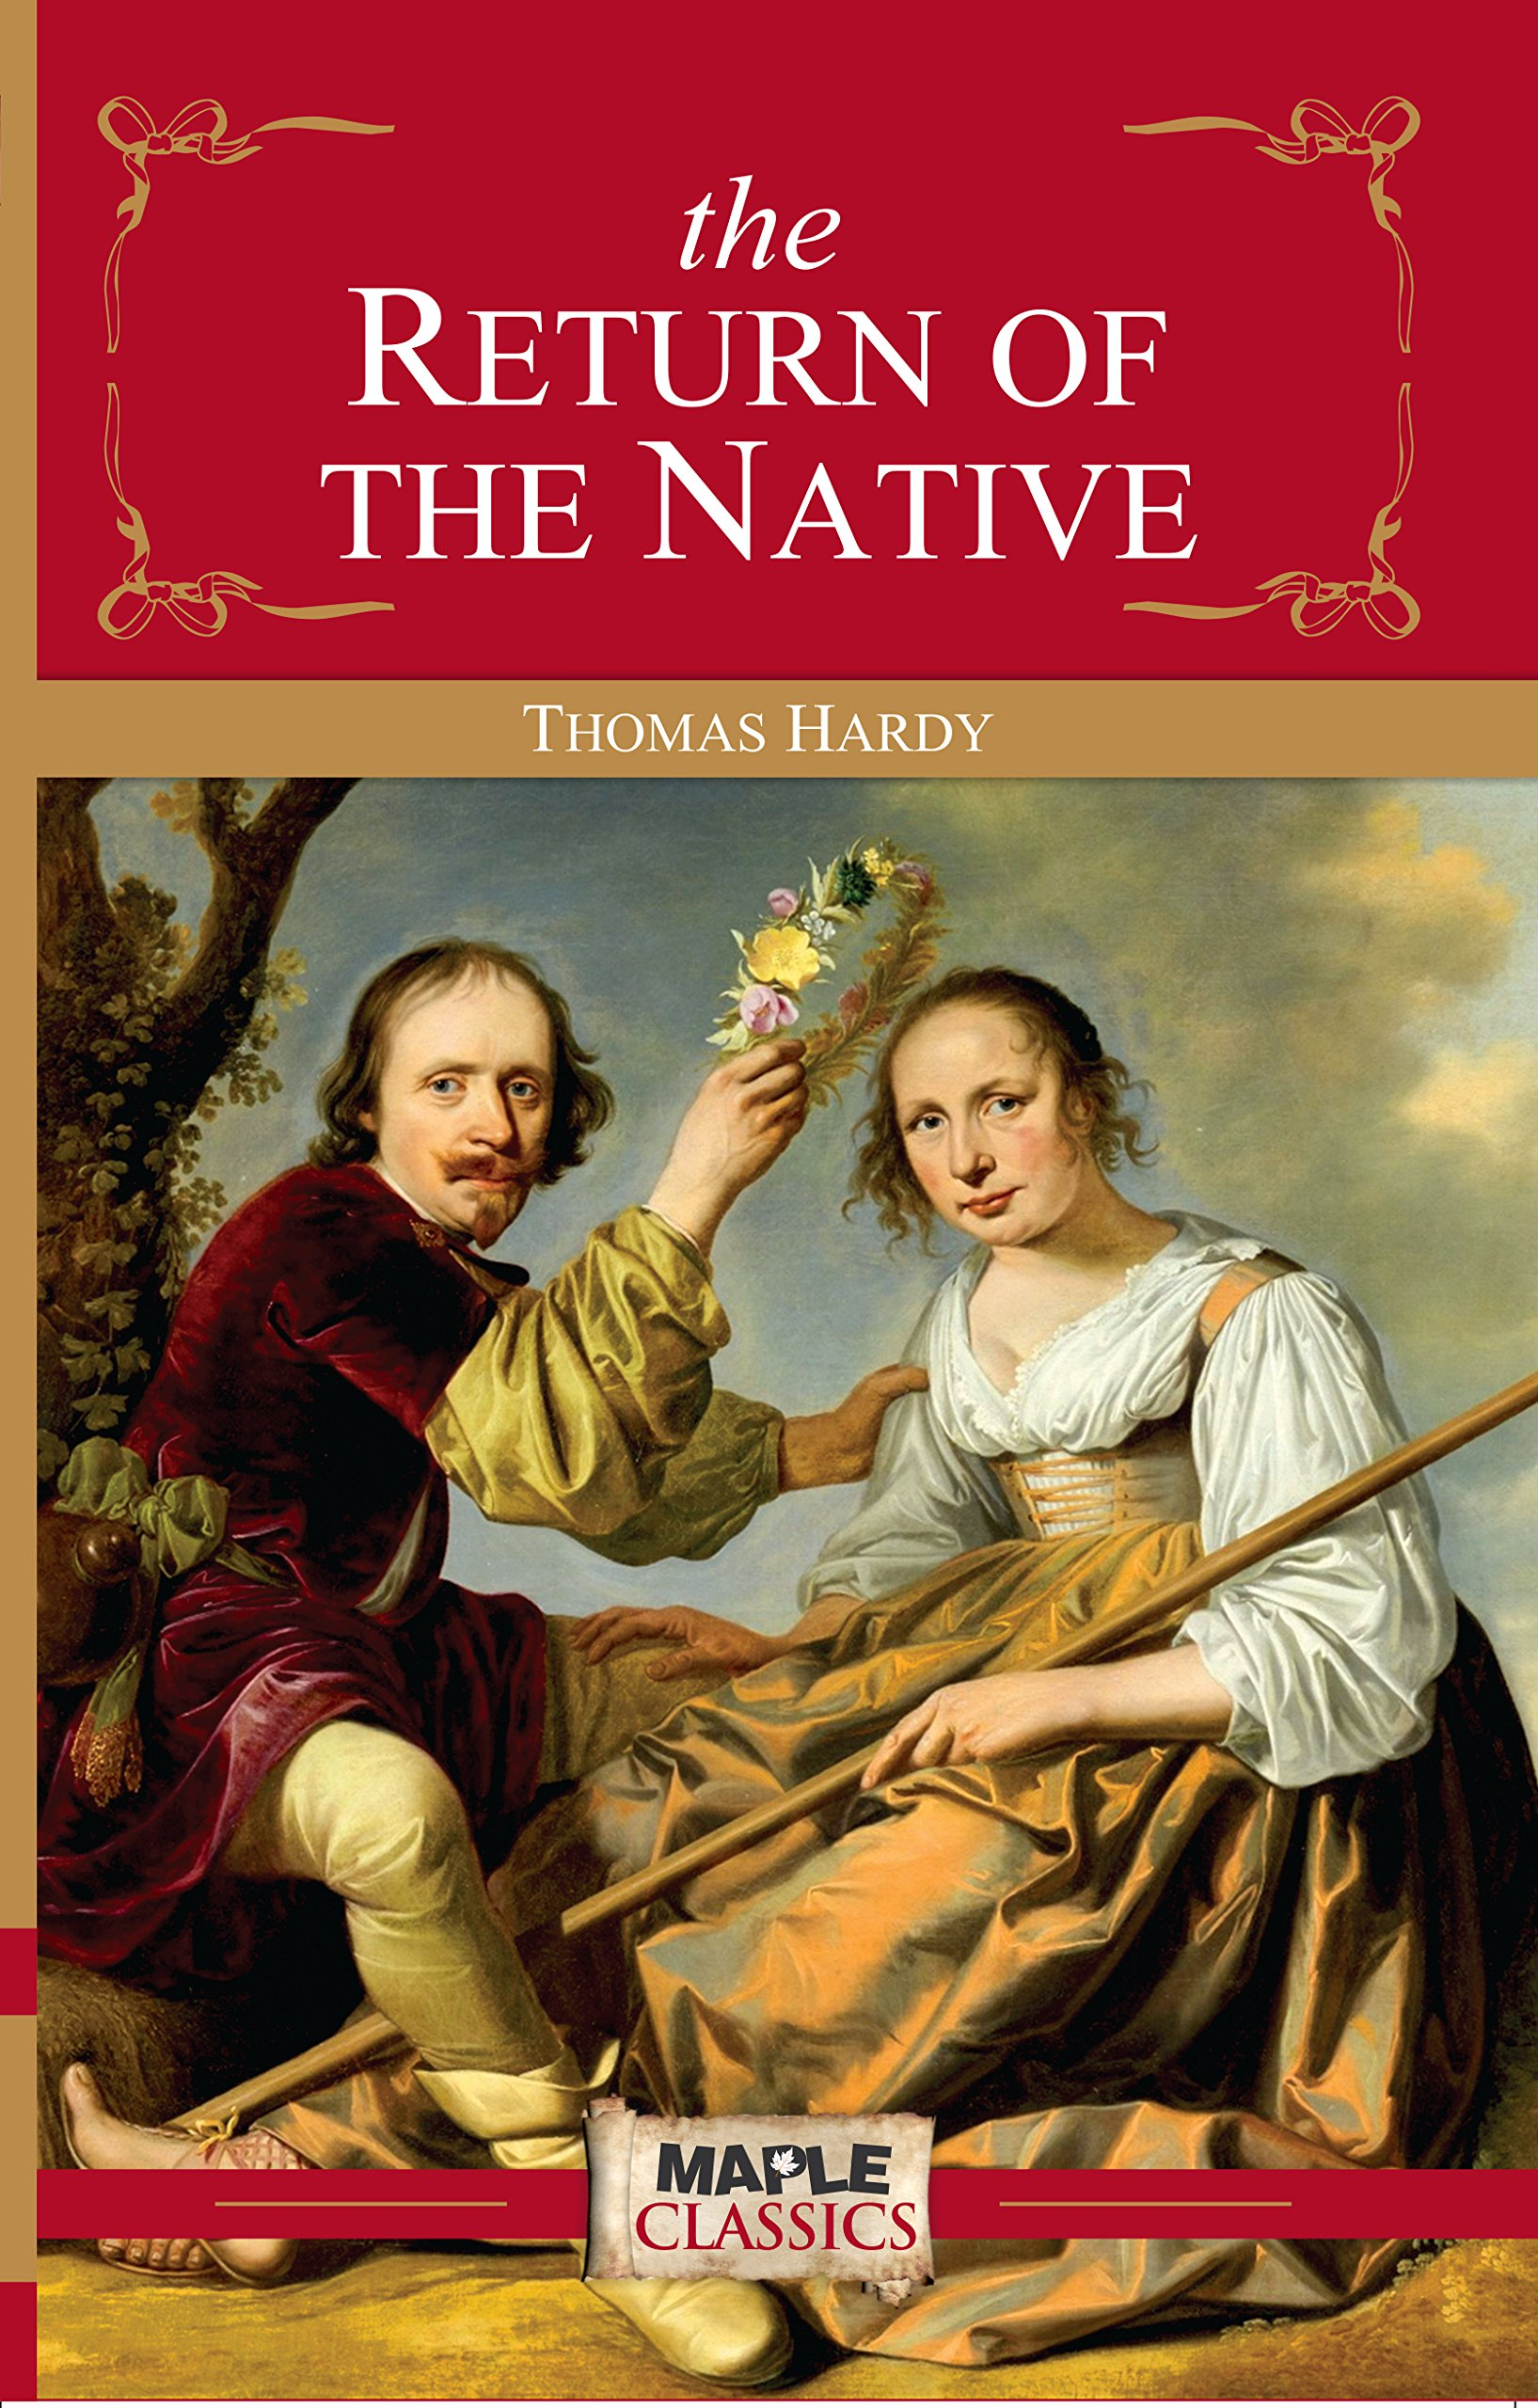 thomas hardy pessimism in the return of the native